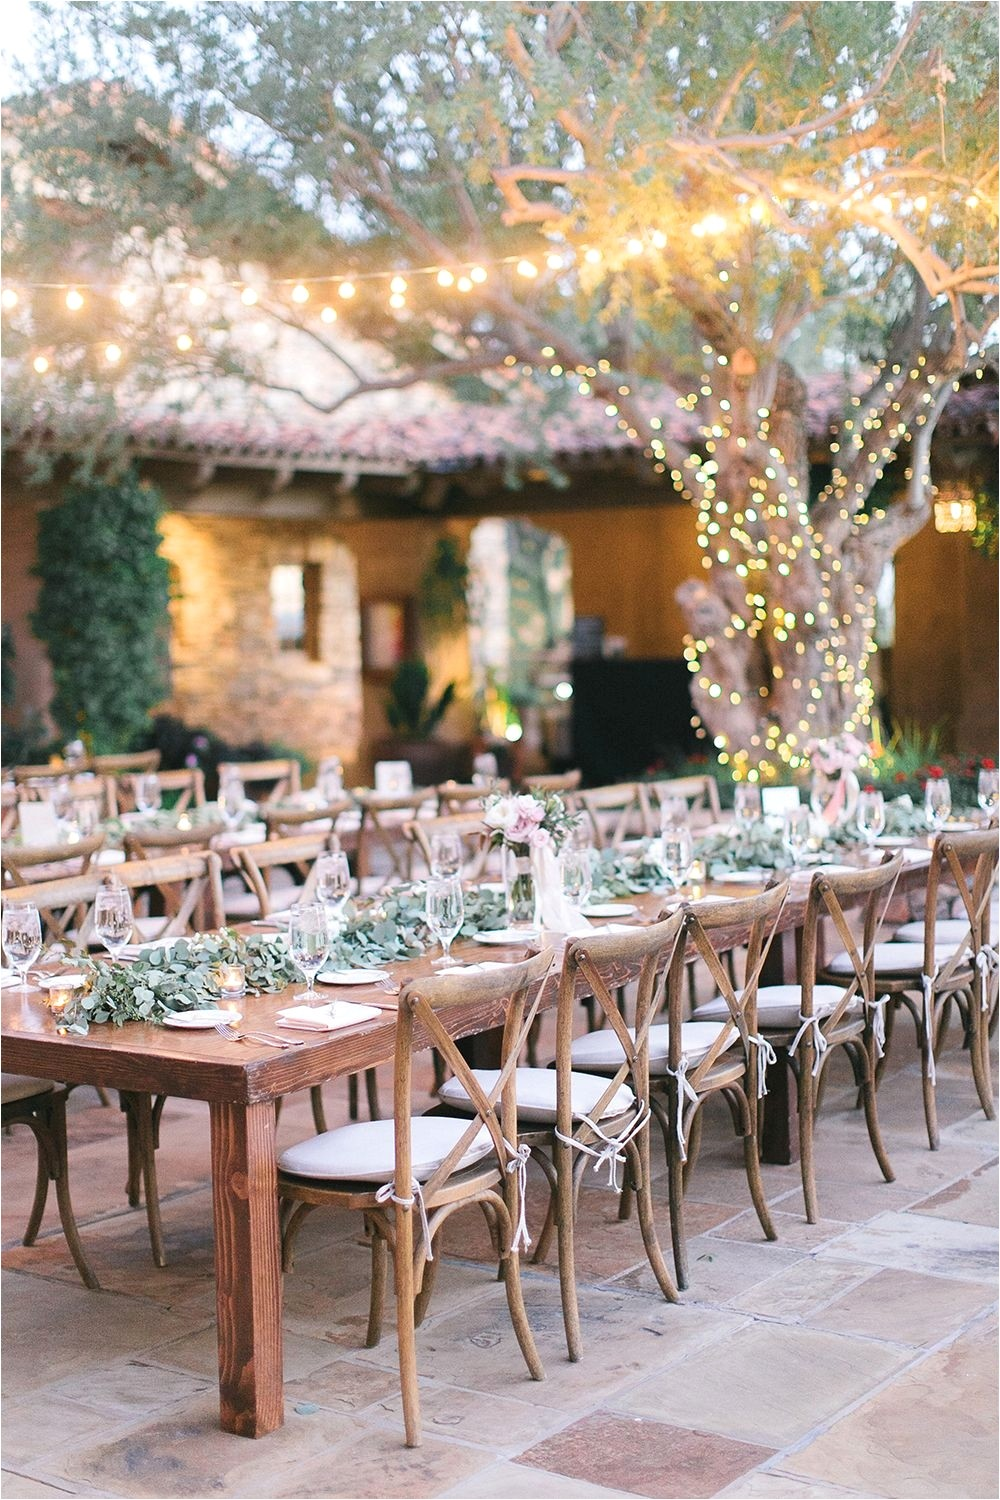 planning an outdoor wedding at home 38 elegant australian country style homes